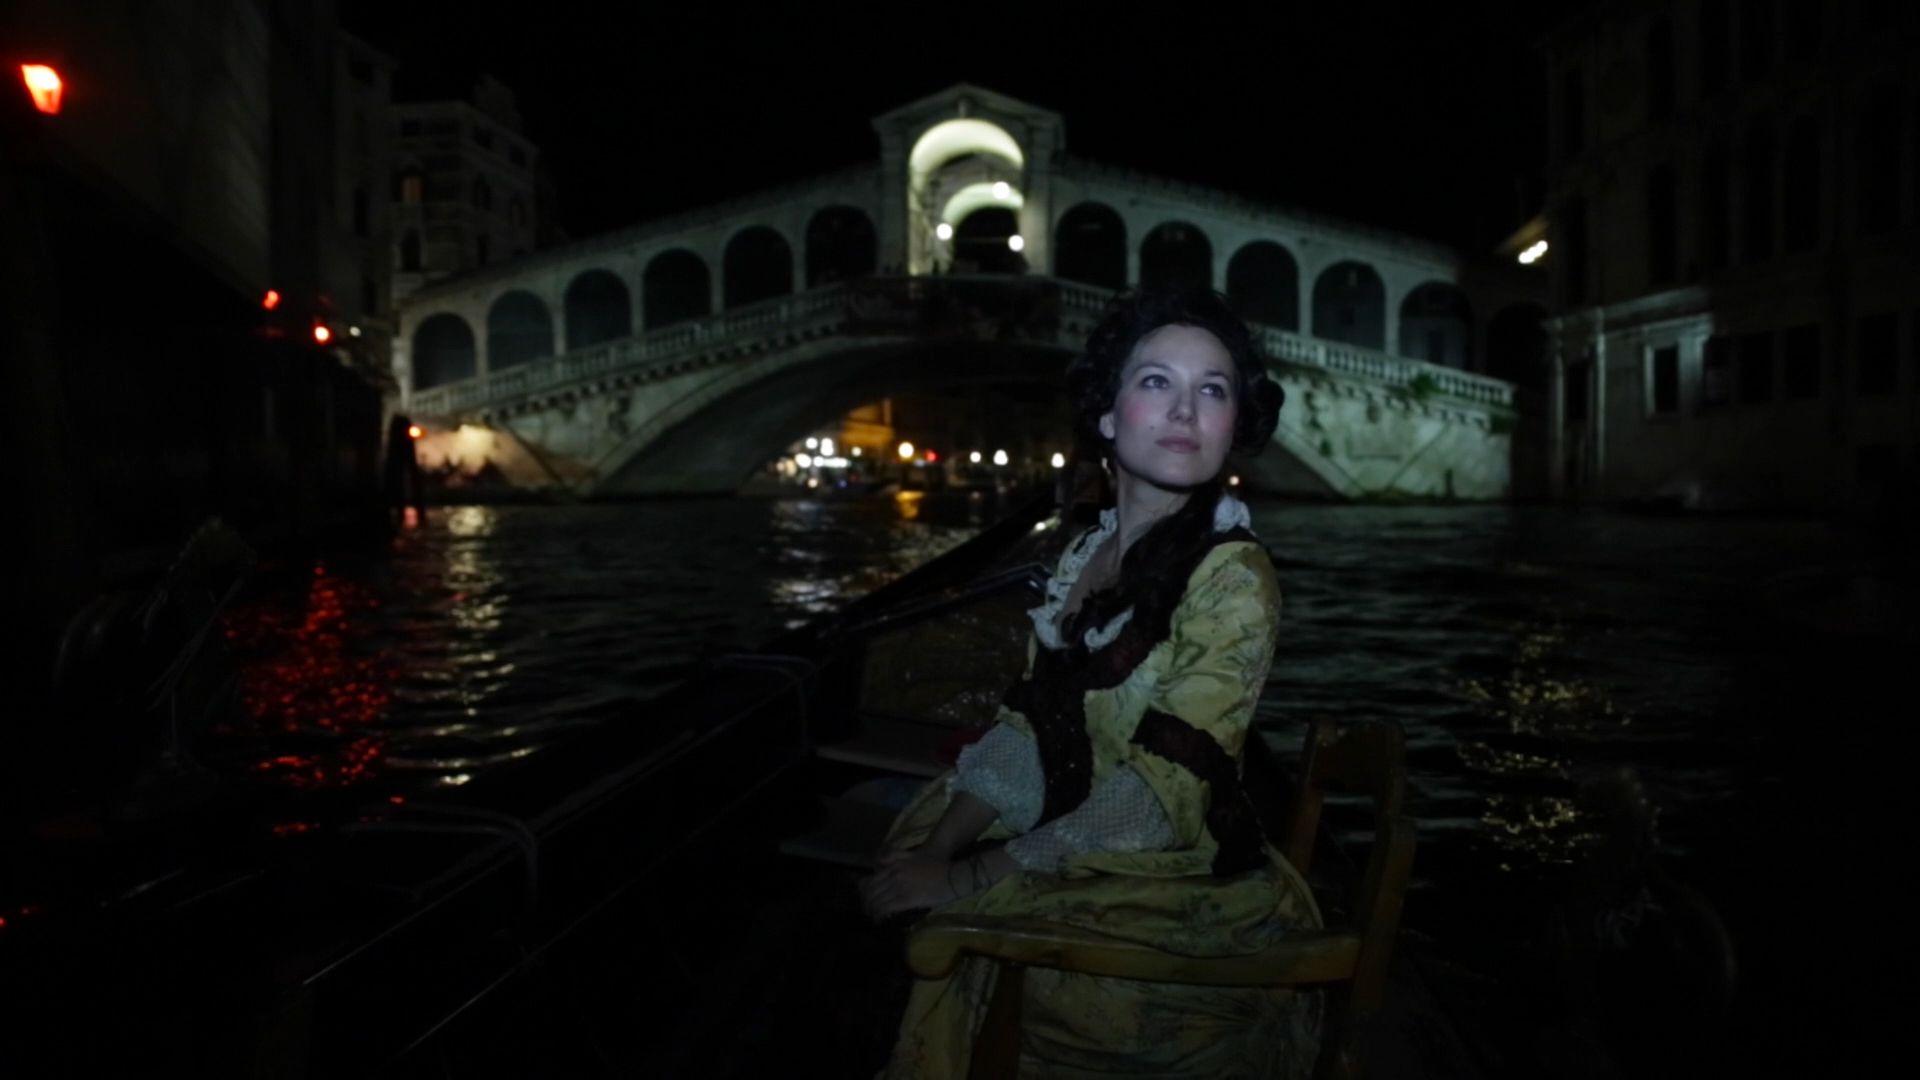 romantic atmosphere in exclusive event in Venice